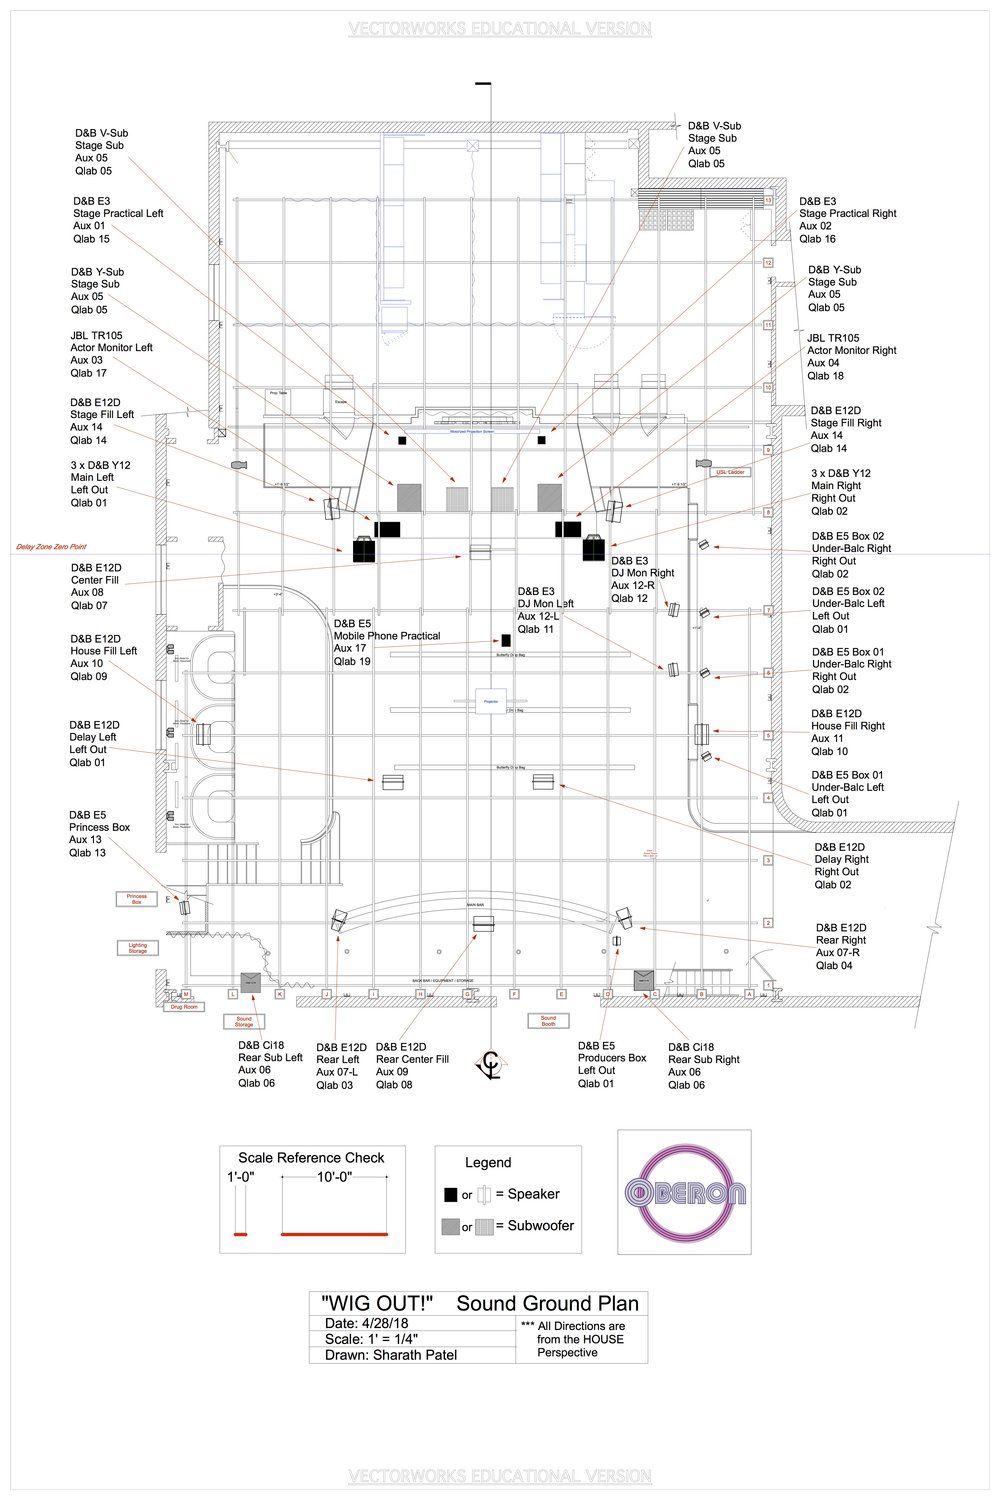 03 WIG OUT! Sound Ground Plan 4-28-18 ARCH-Dsize.jpg